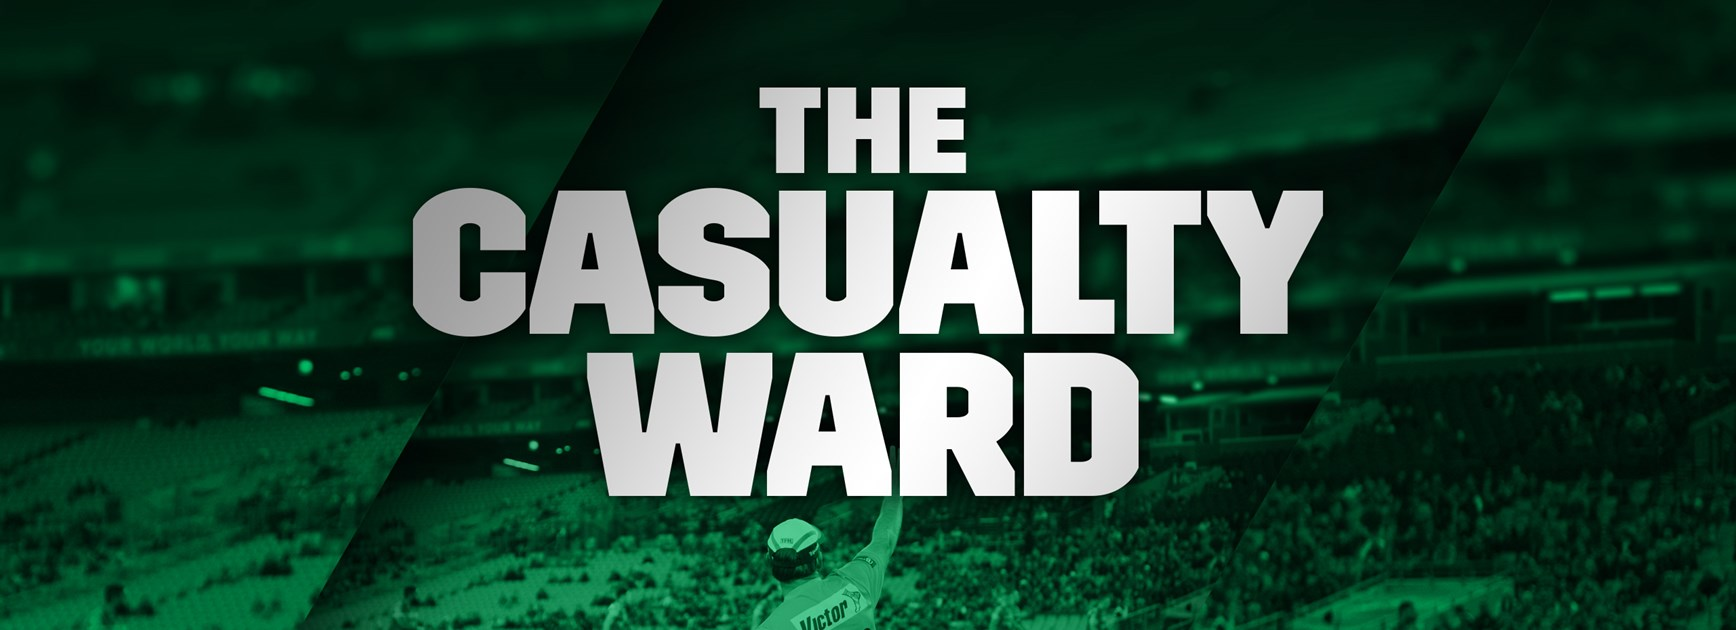 Casualty Ward: Round 2 - big setbacks for heavyweight clubs